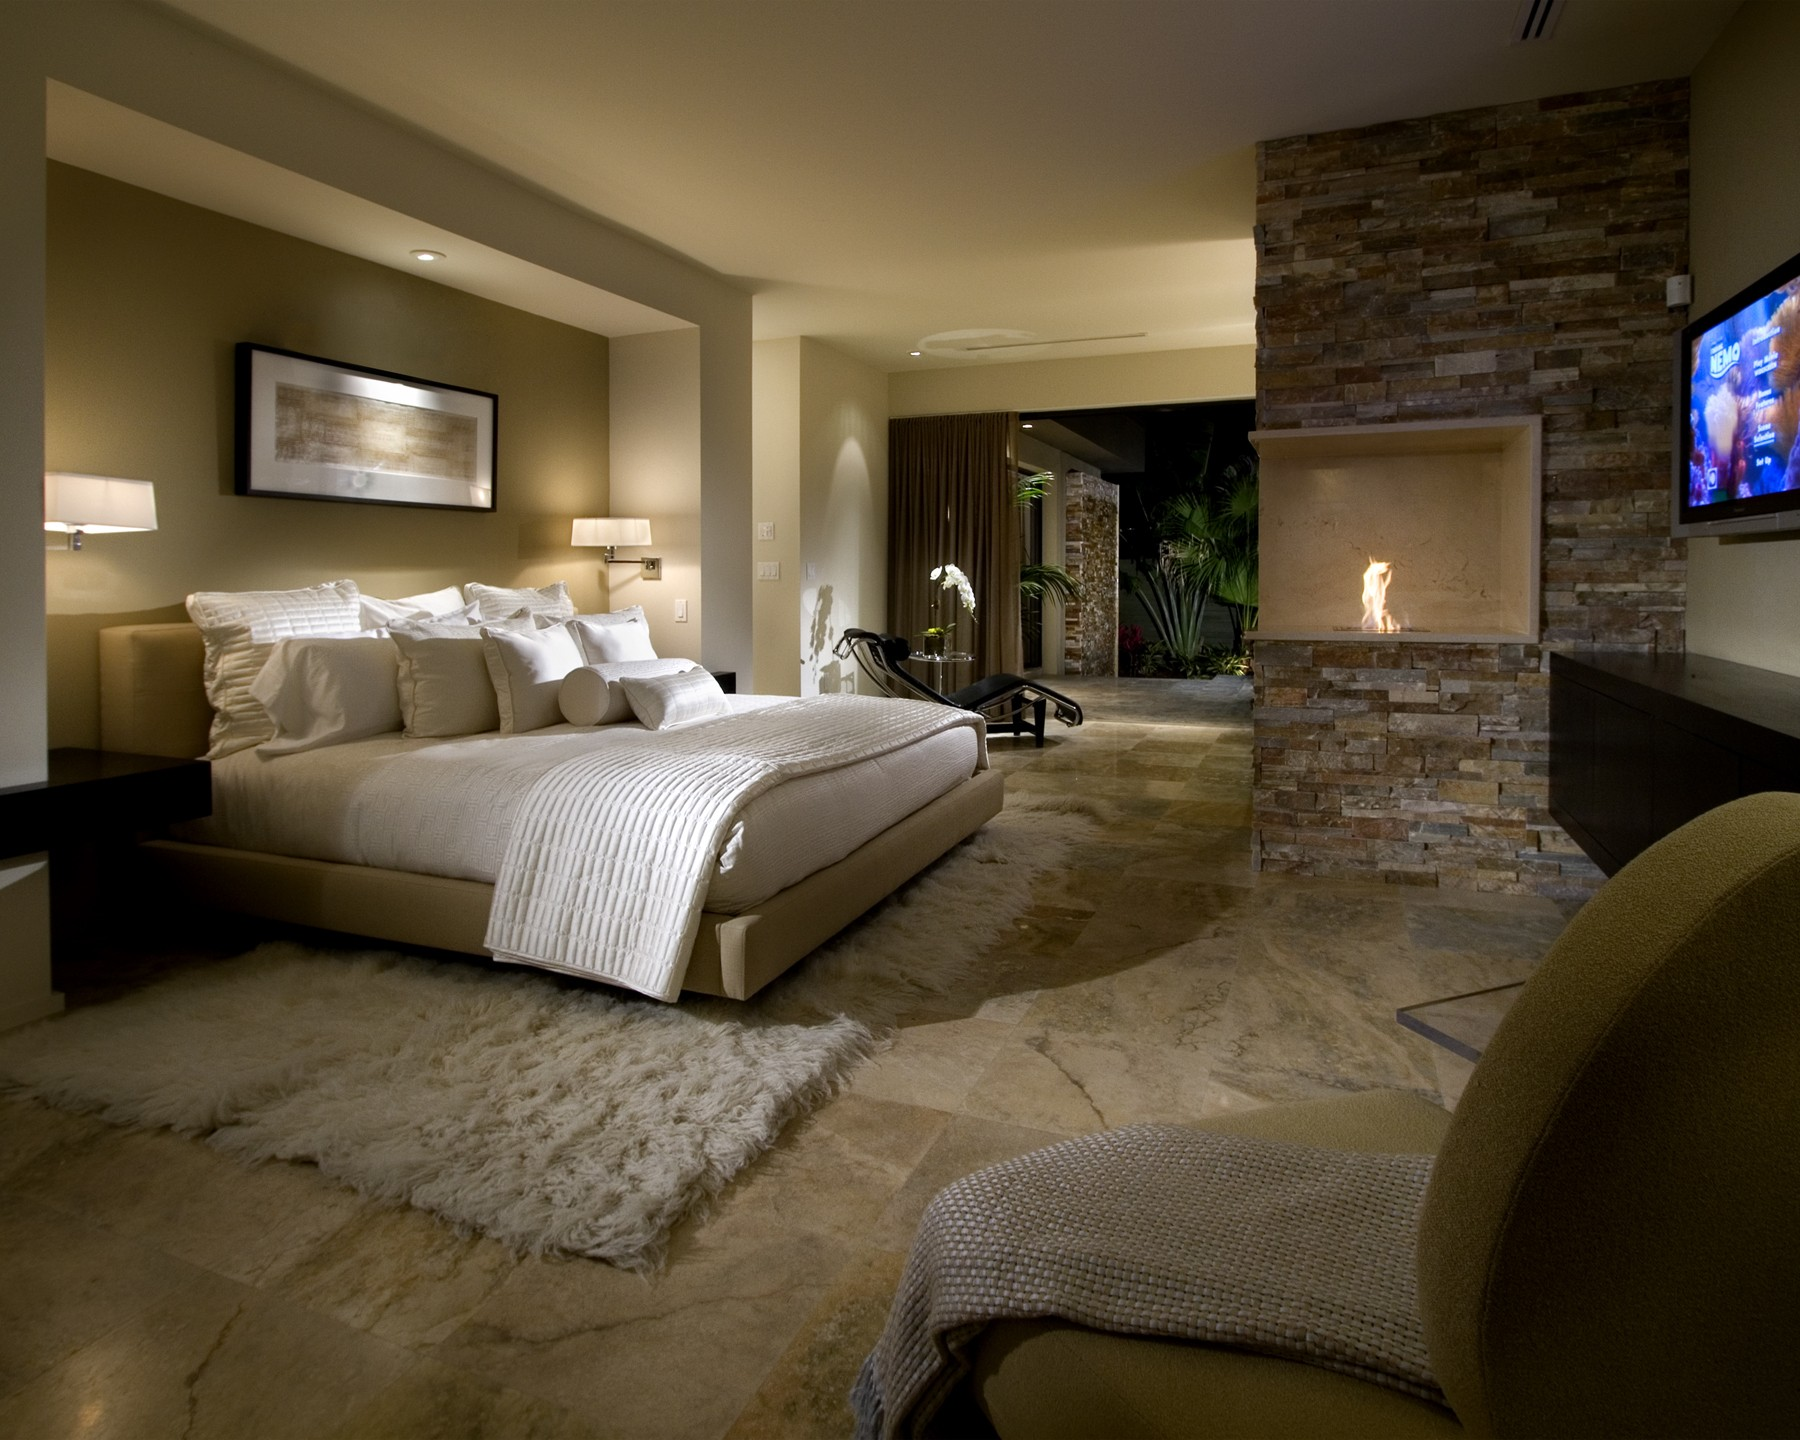 6 Bedrooms With Fireplaces We Would Love To Wake Up To